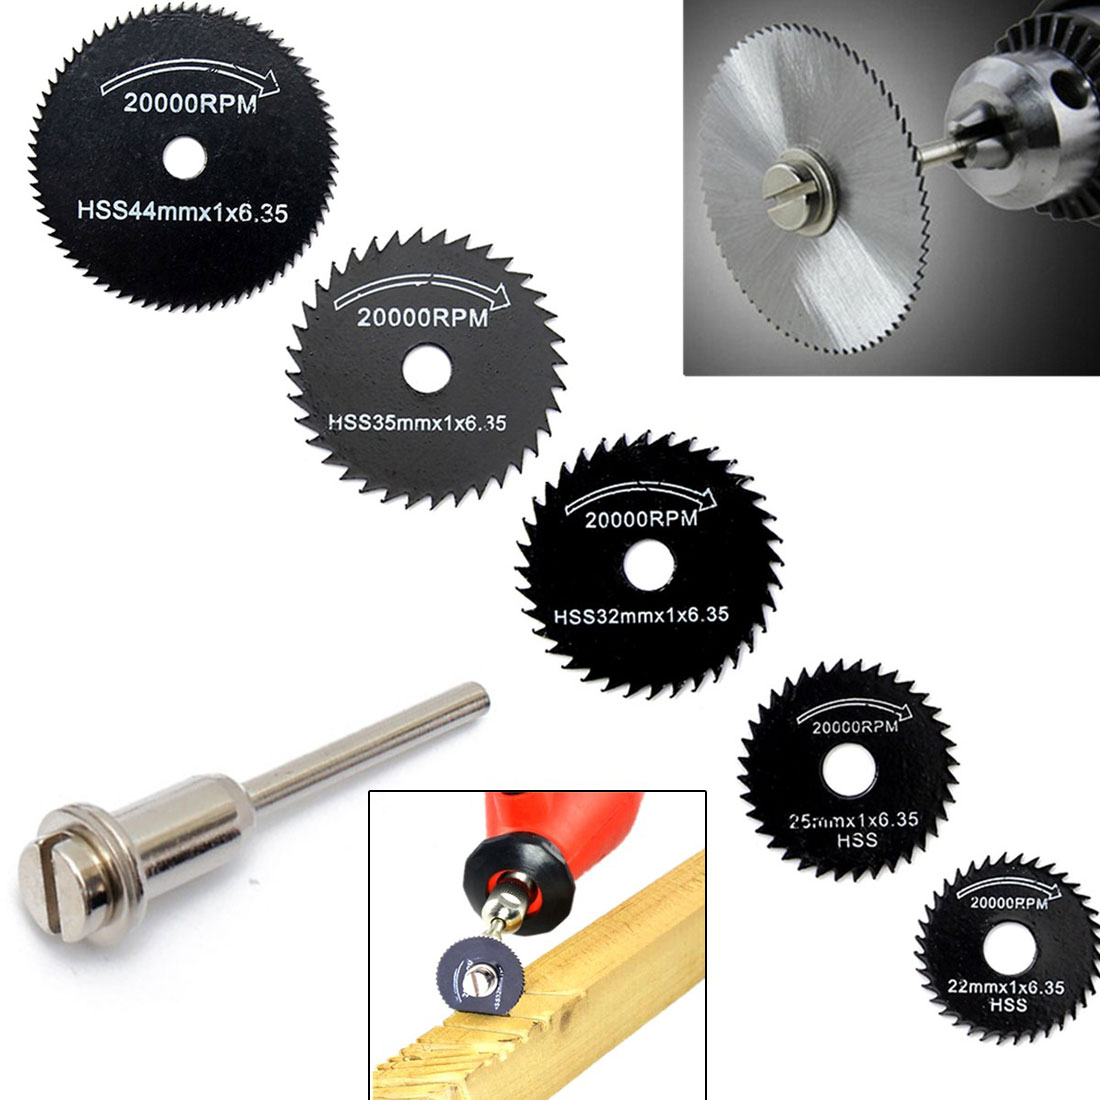 5pcs/set High Speed Steel Circular Saw Blade Disk Wood Cutting Disc Metal Cutter Power Tool Kit Rotary Tool Drill Mandrel